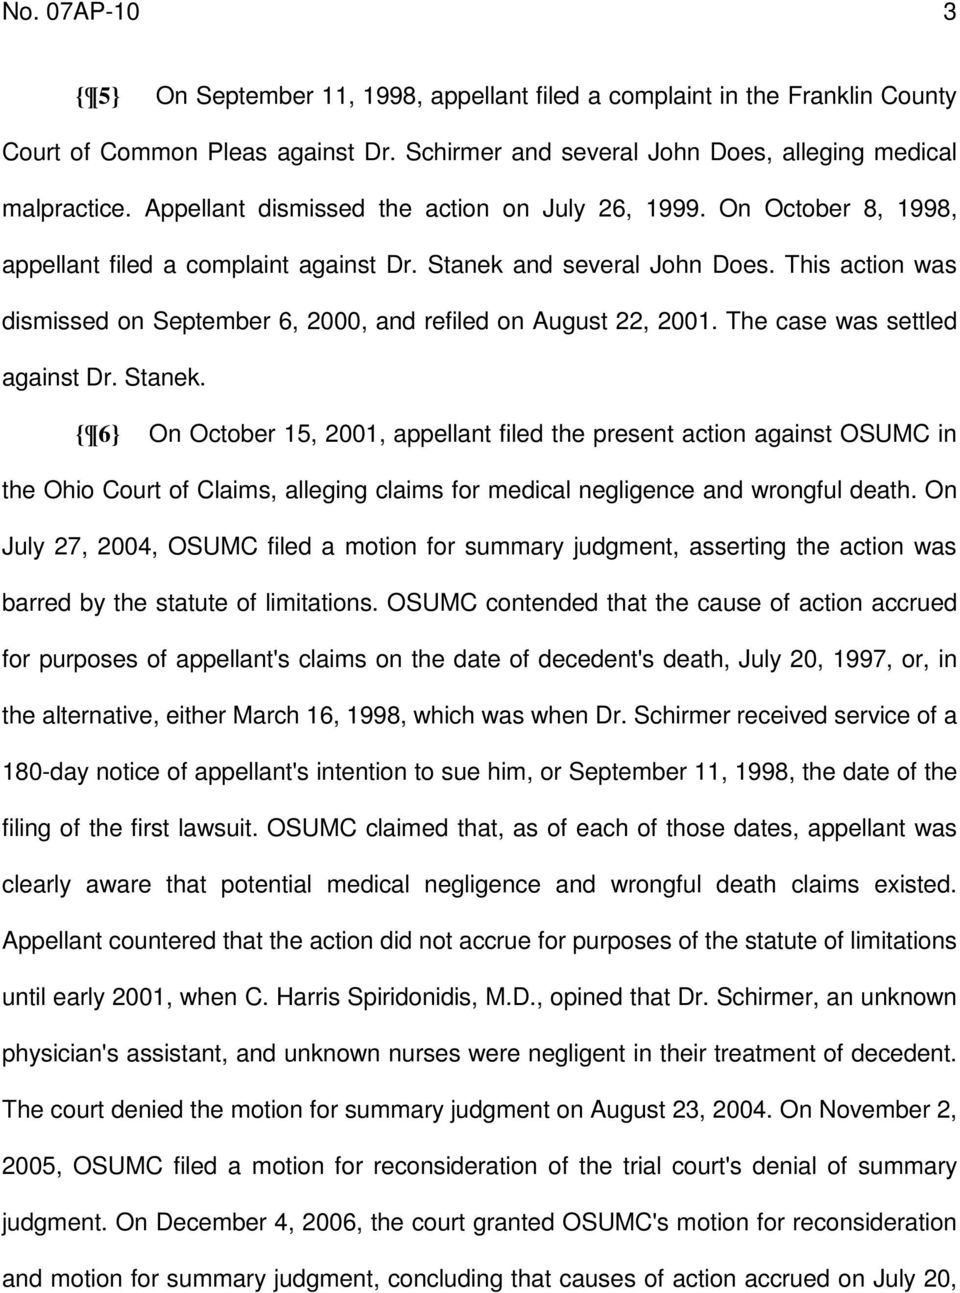 This action was dismissed on September 6, 2000, and refiled on August 22, 2001. The case was settled against Dr. Stanek.